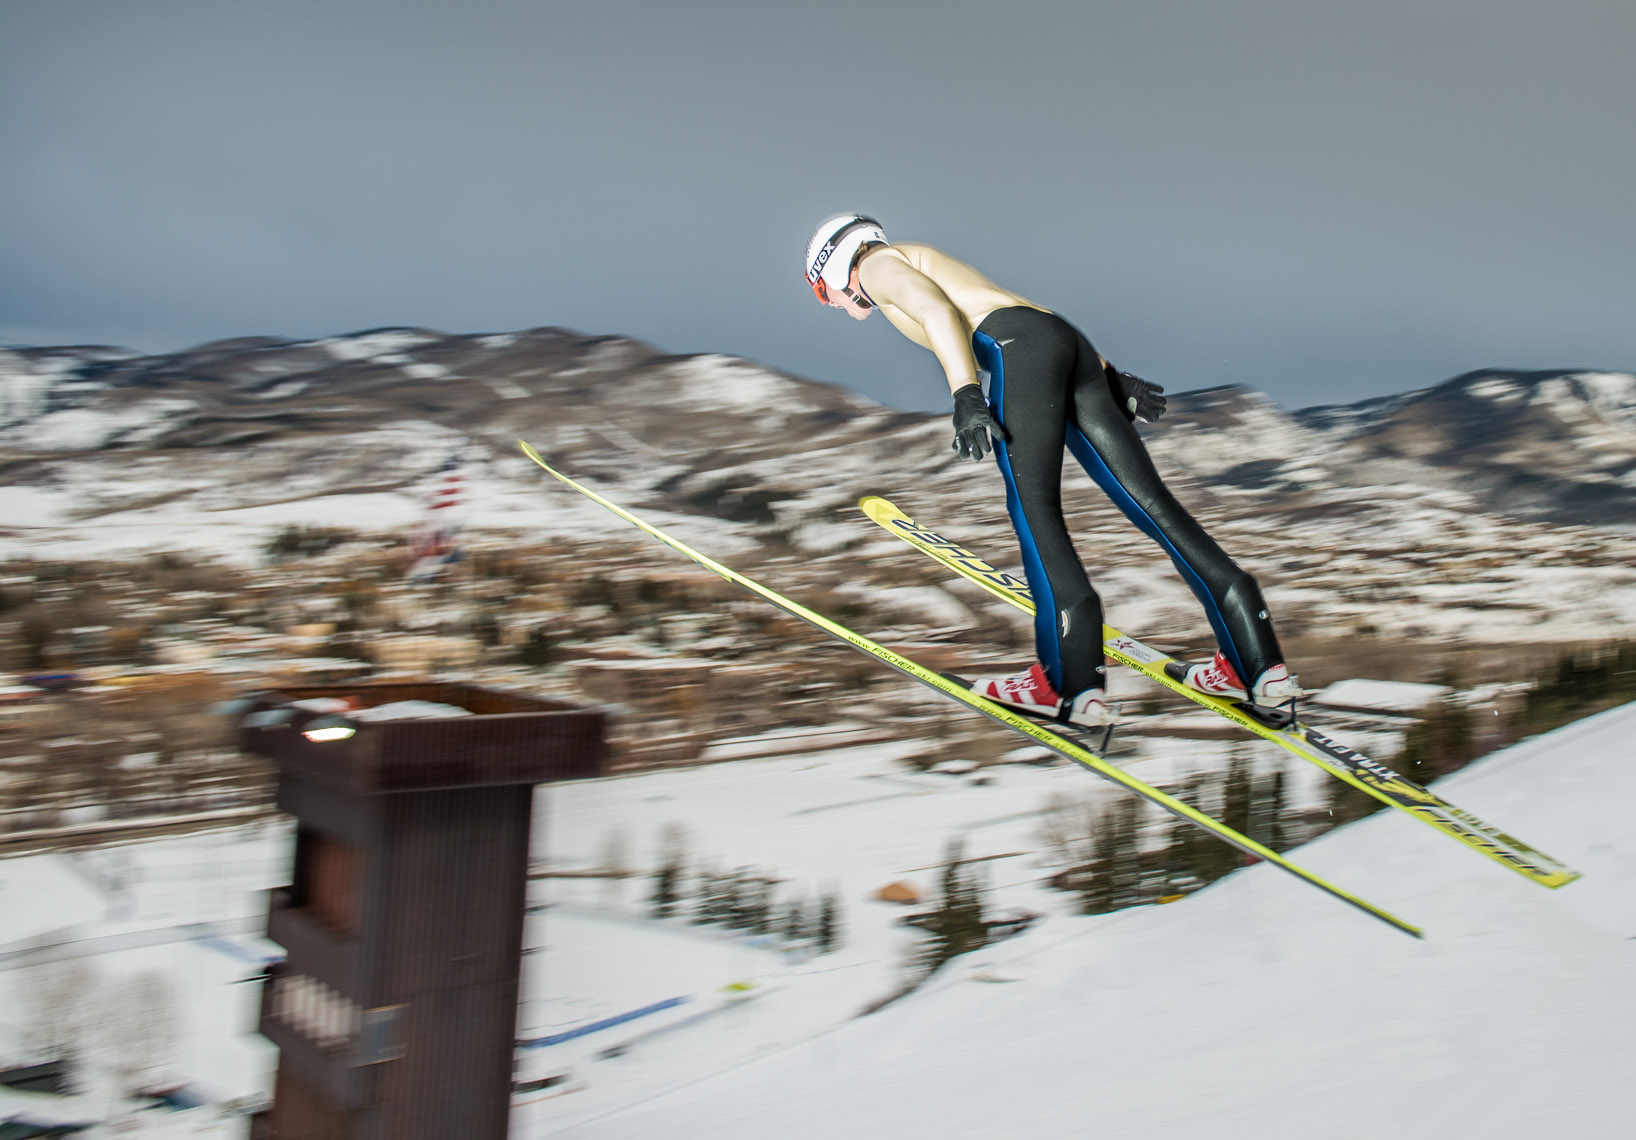 Kevin Steele - a ski jumper takes flight